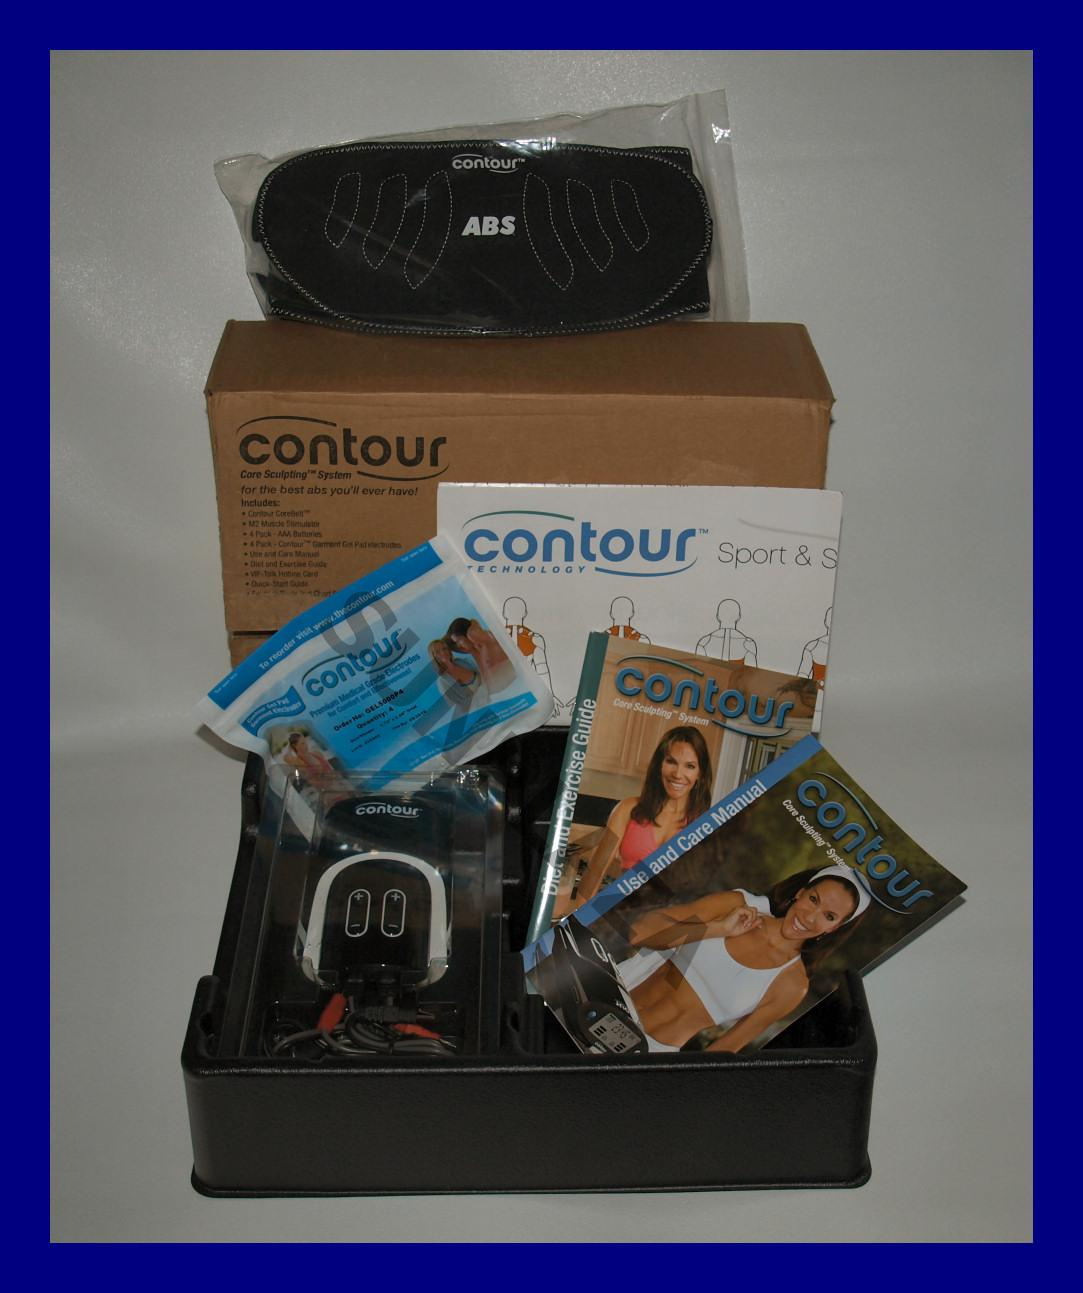 The Contour Core Sculpting System products and accessories are designed to help slim your tummy and tone your ab muscles without straining your body or even breaking a sweat.